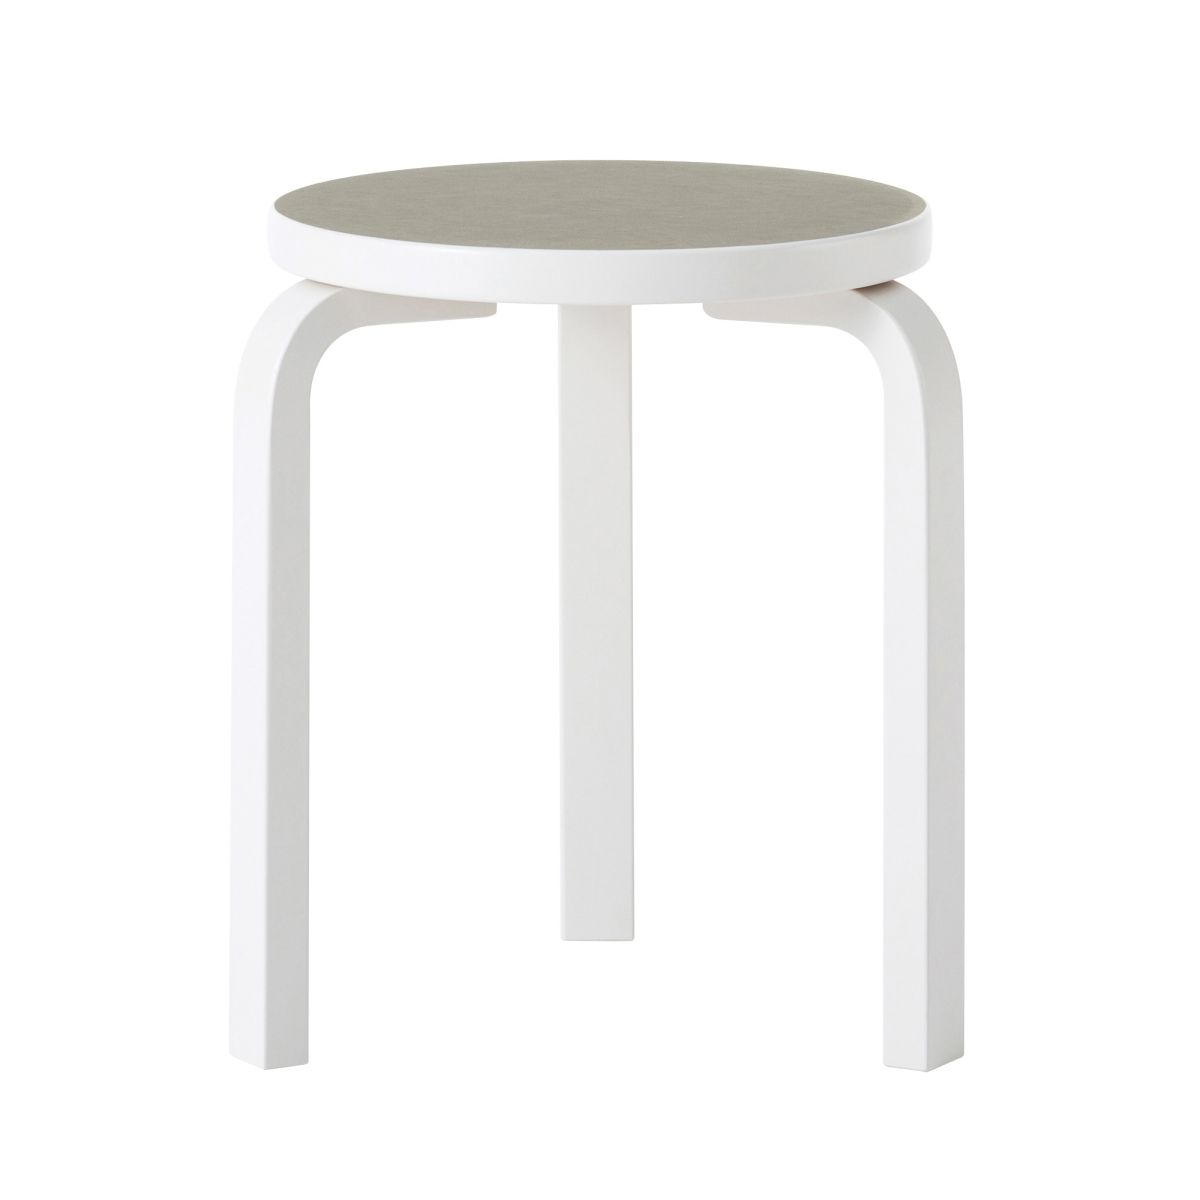 Stool 60 stone white lacquer pebble linoleum_1